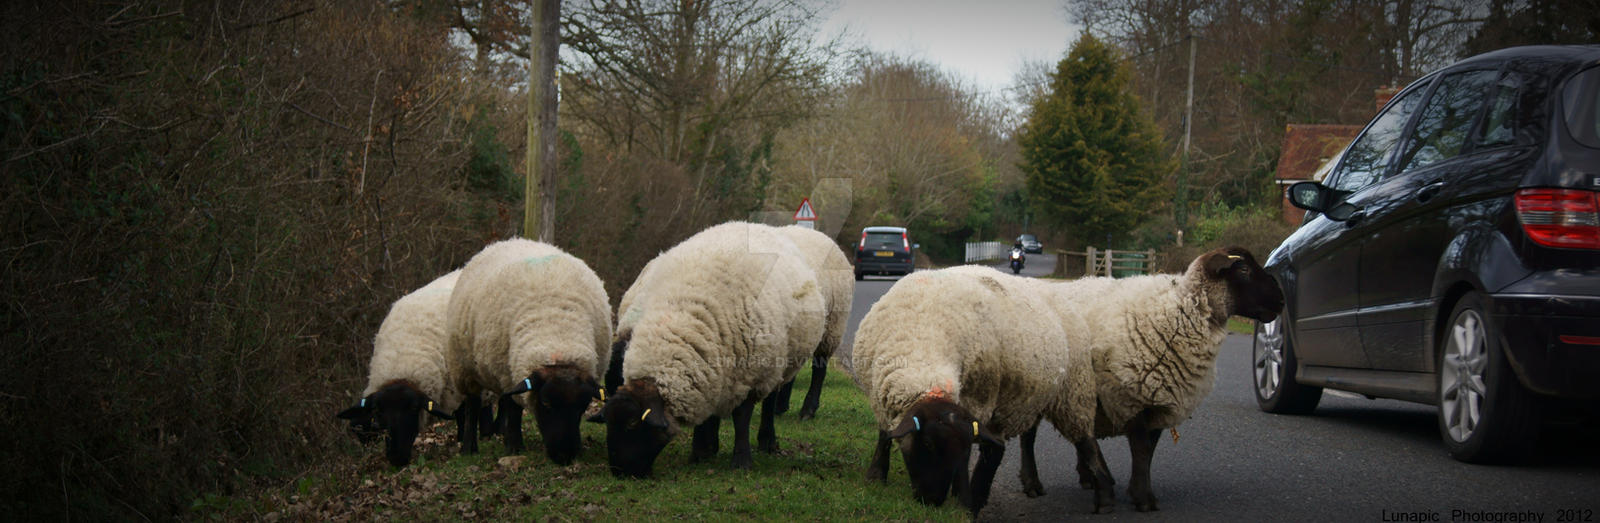 Why did the sheep cross the road? by Lunapic